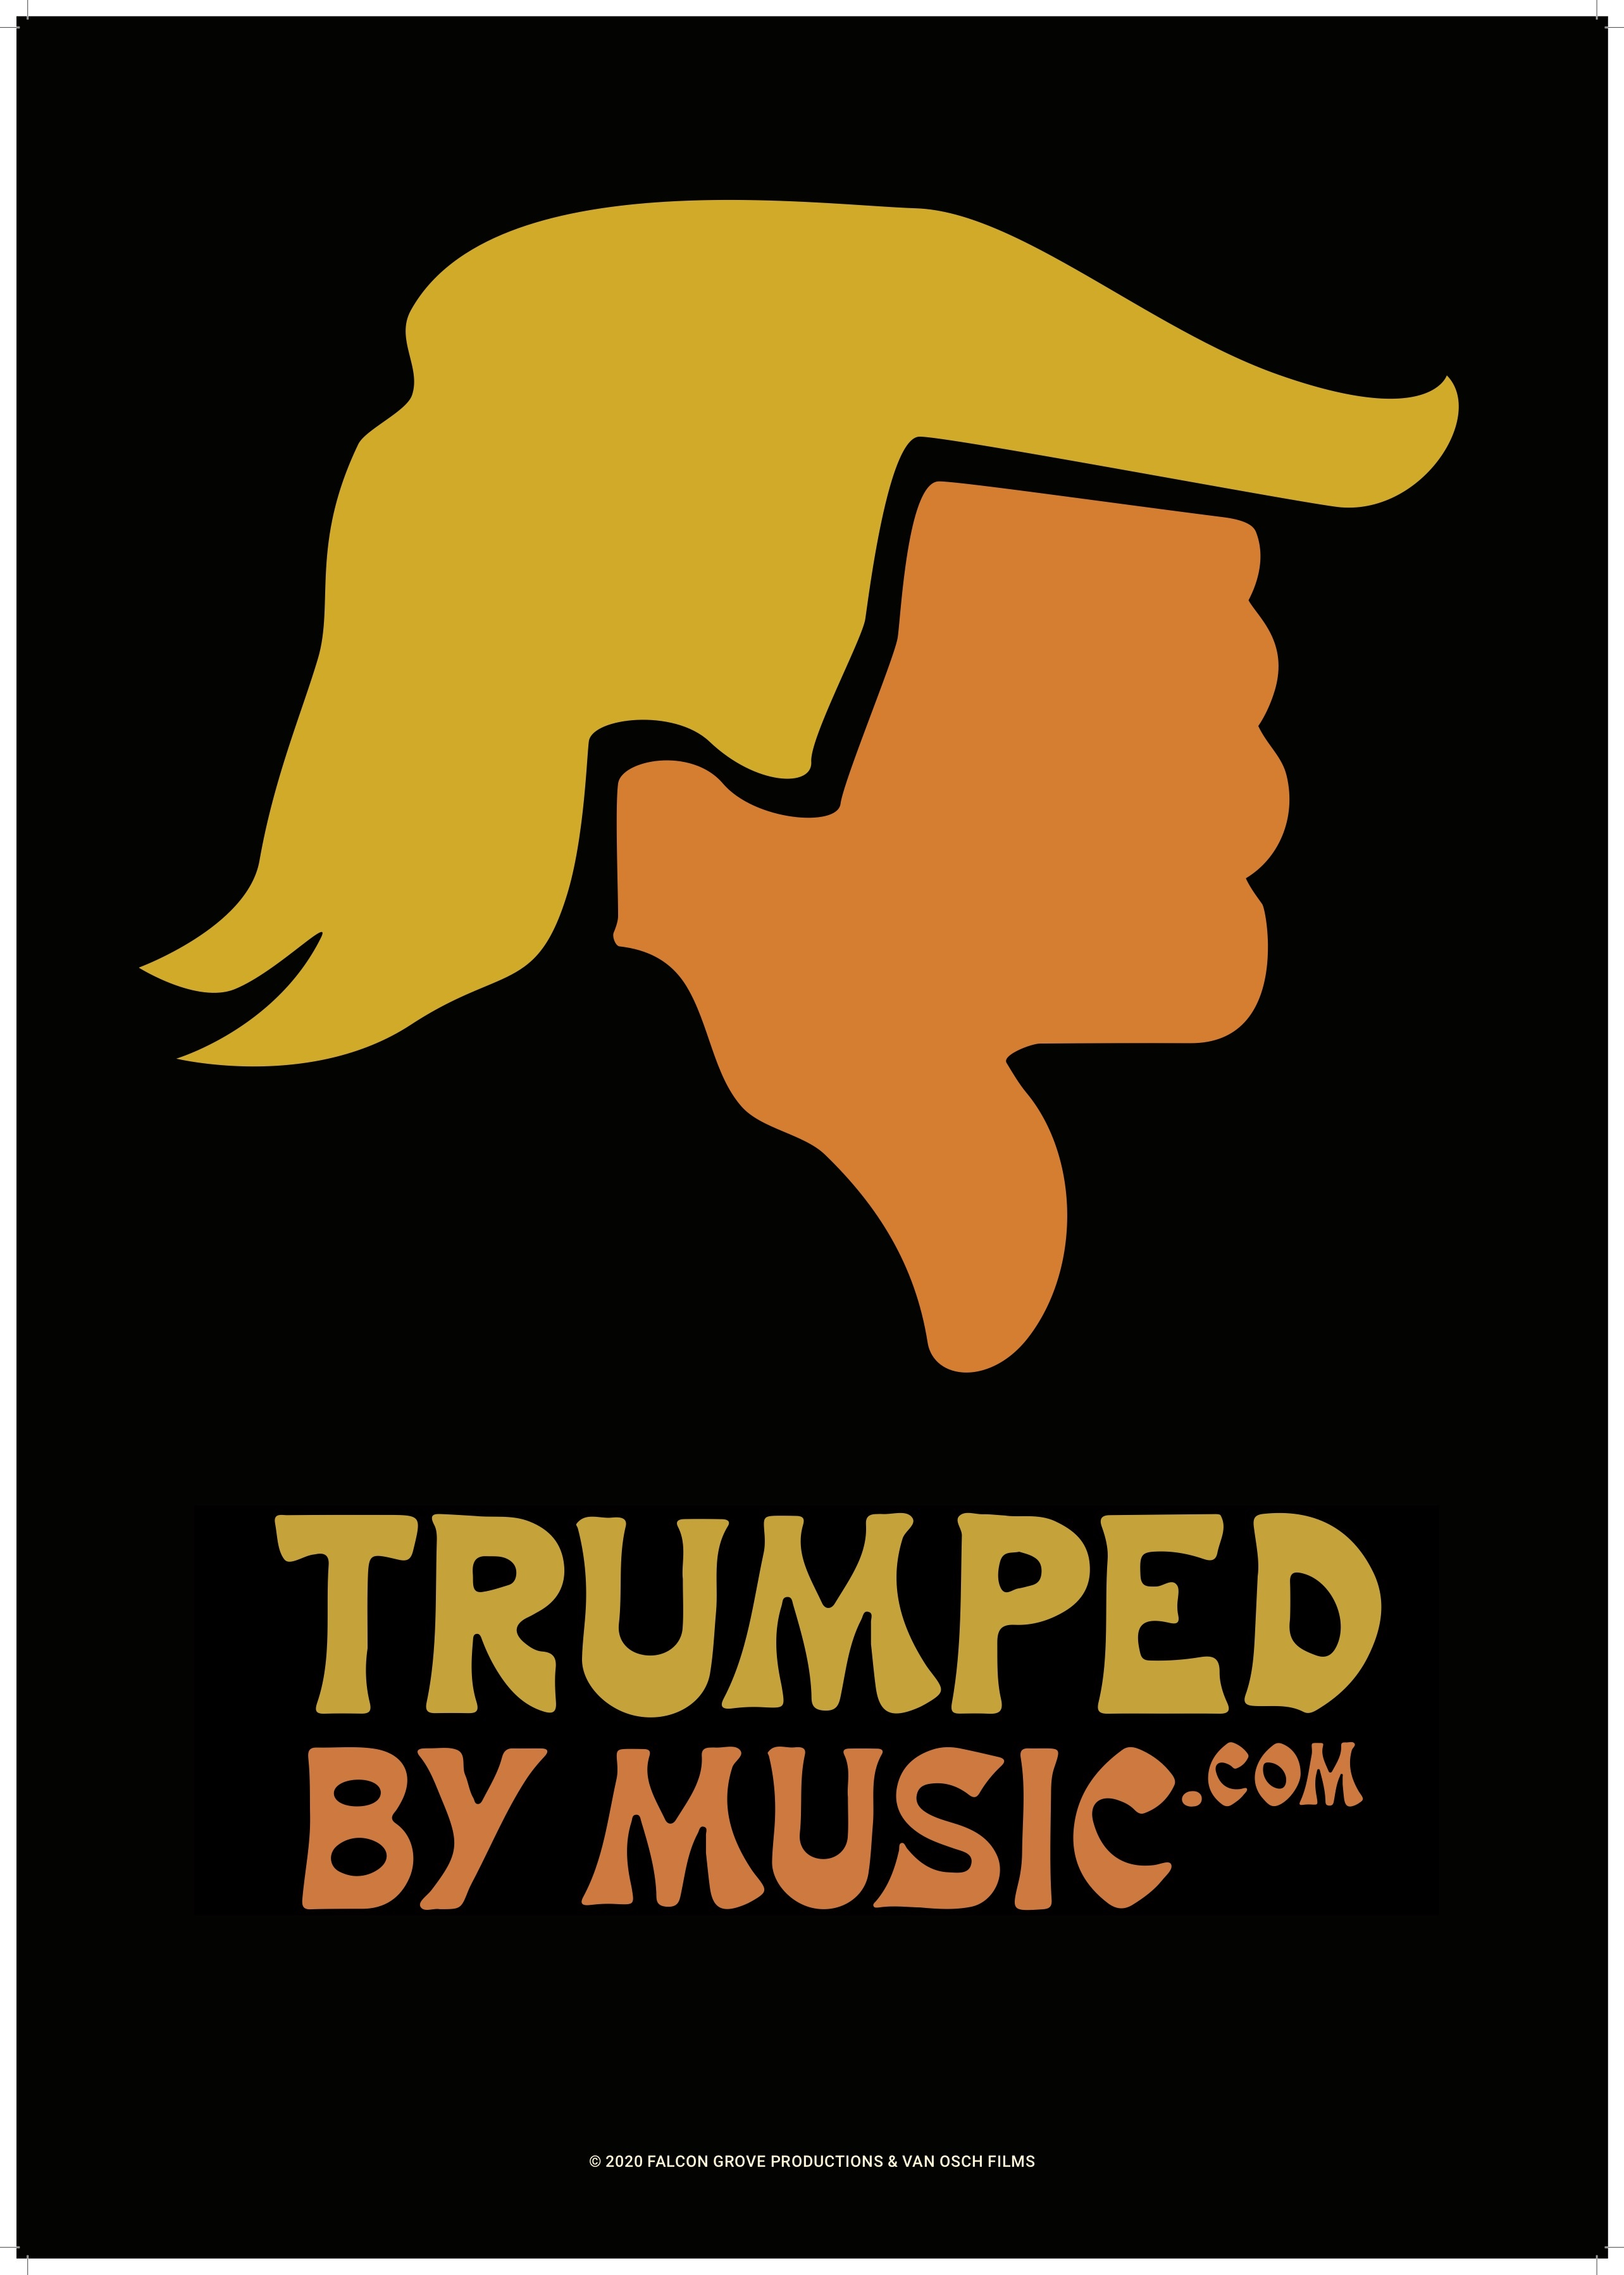 TRUMPED BY MUSIC, Online Documentary Series (in production)